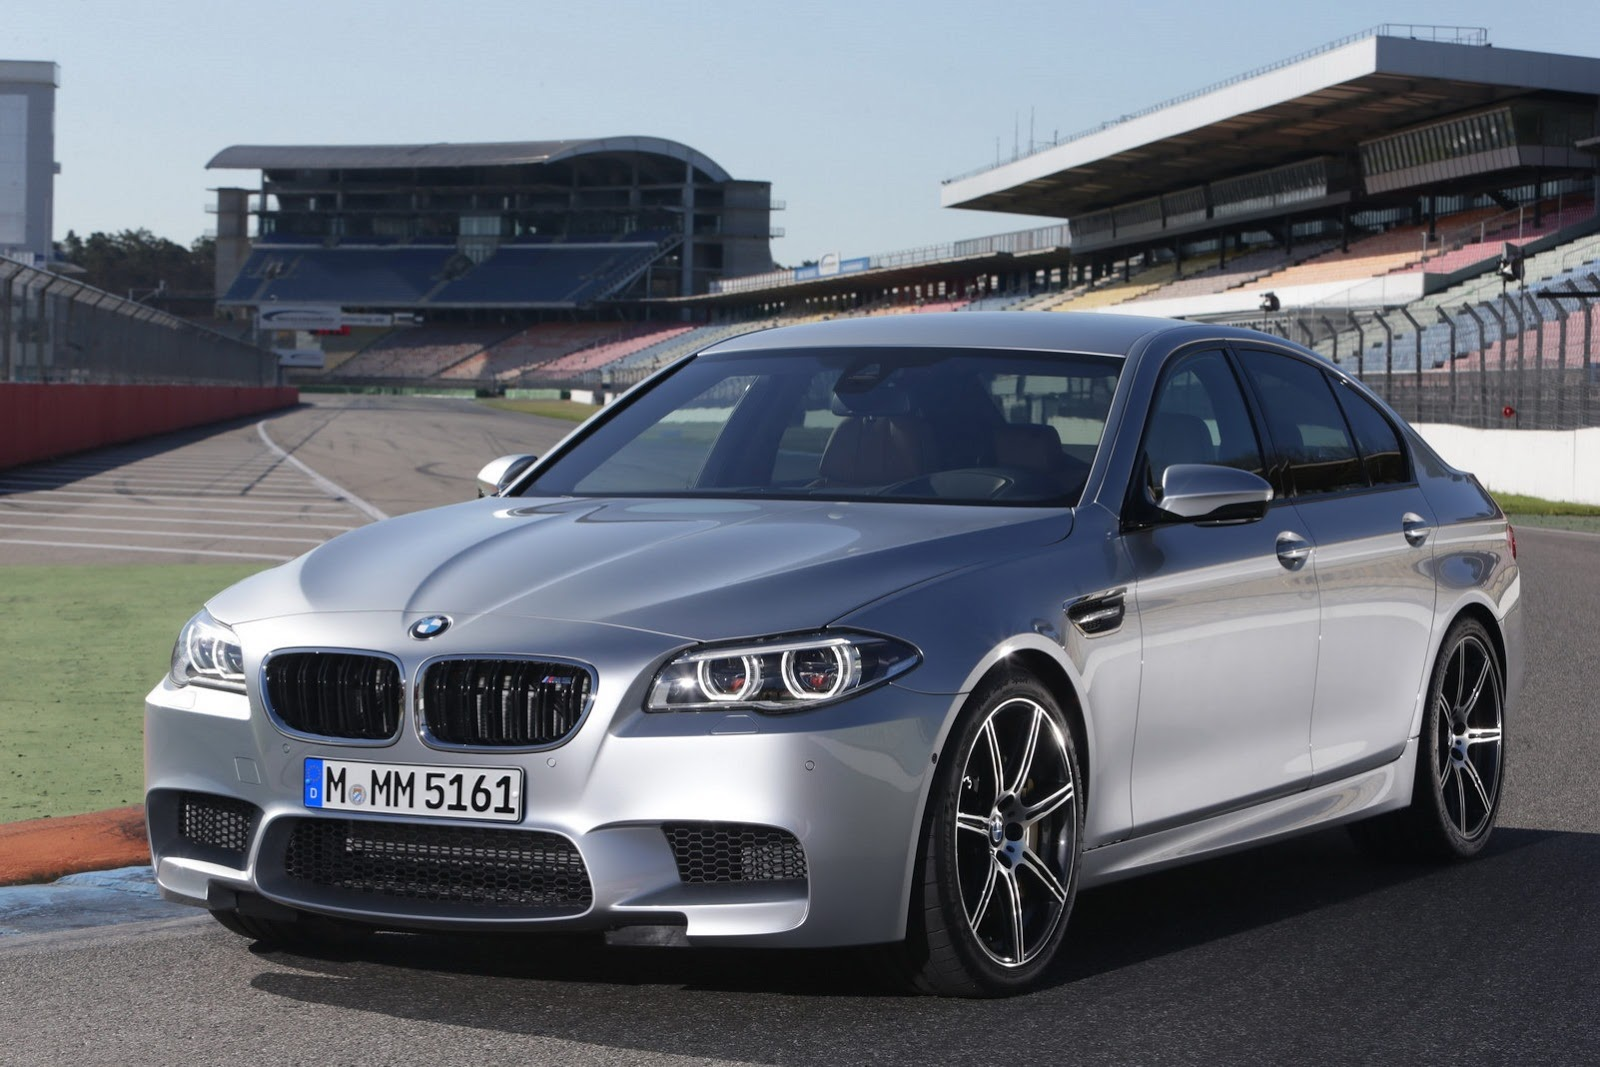 ilder, BMW, BMW M5 2014, BmwM52014, breaking, der neue BMW M5, DerNeueBmwM5, durchgesickert, F10, Facelift, fotos, Konfigurator, M5, Modellpflege, Mopf, pics